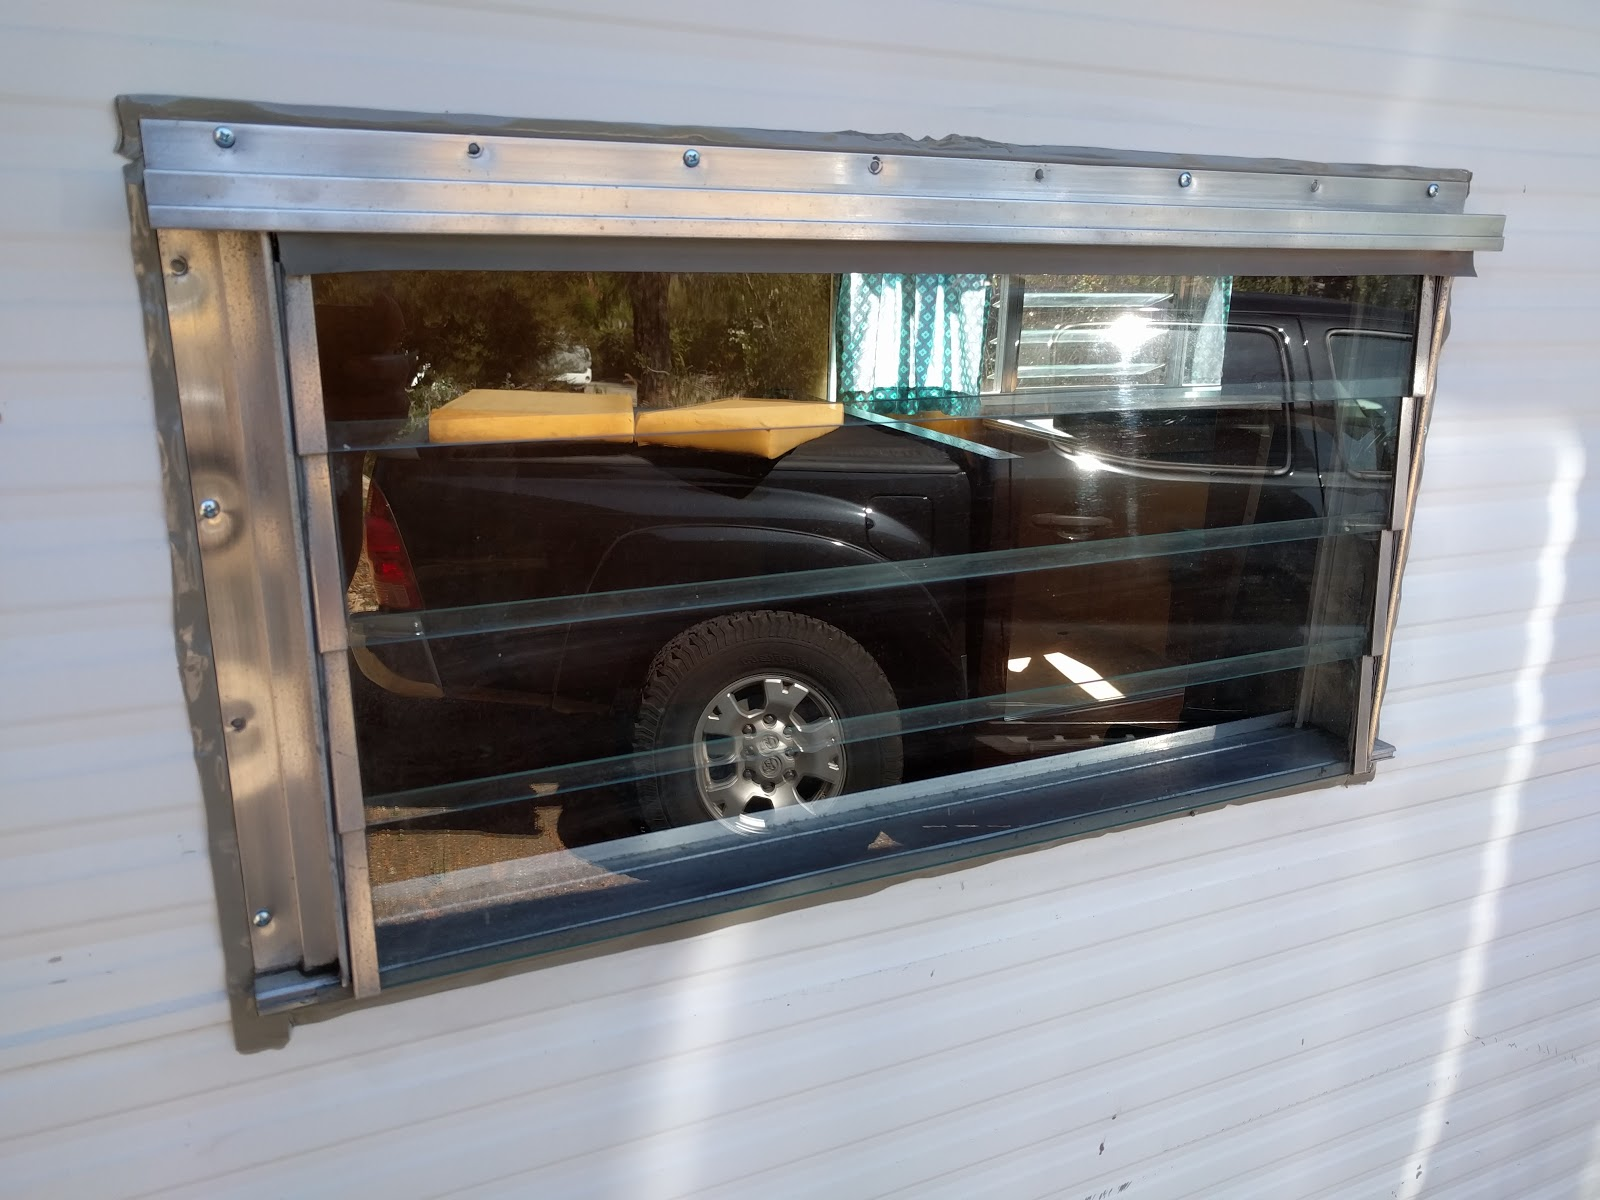 1965 Field And Stream Travel Trailer Windows Windows Windows